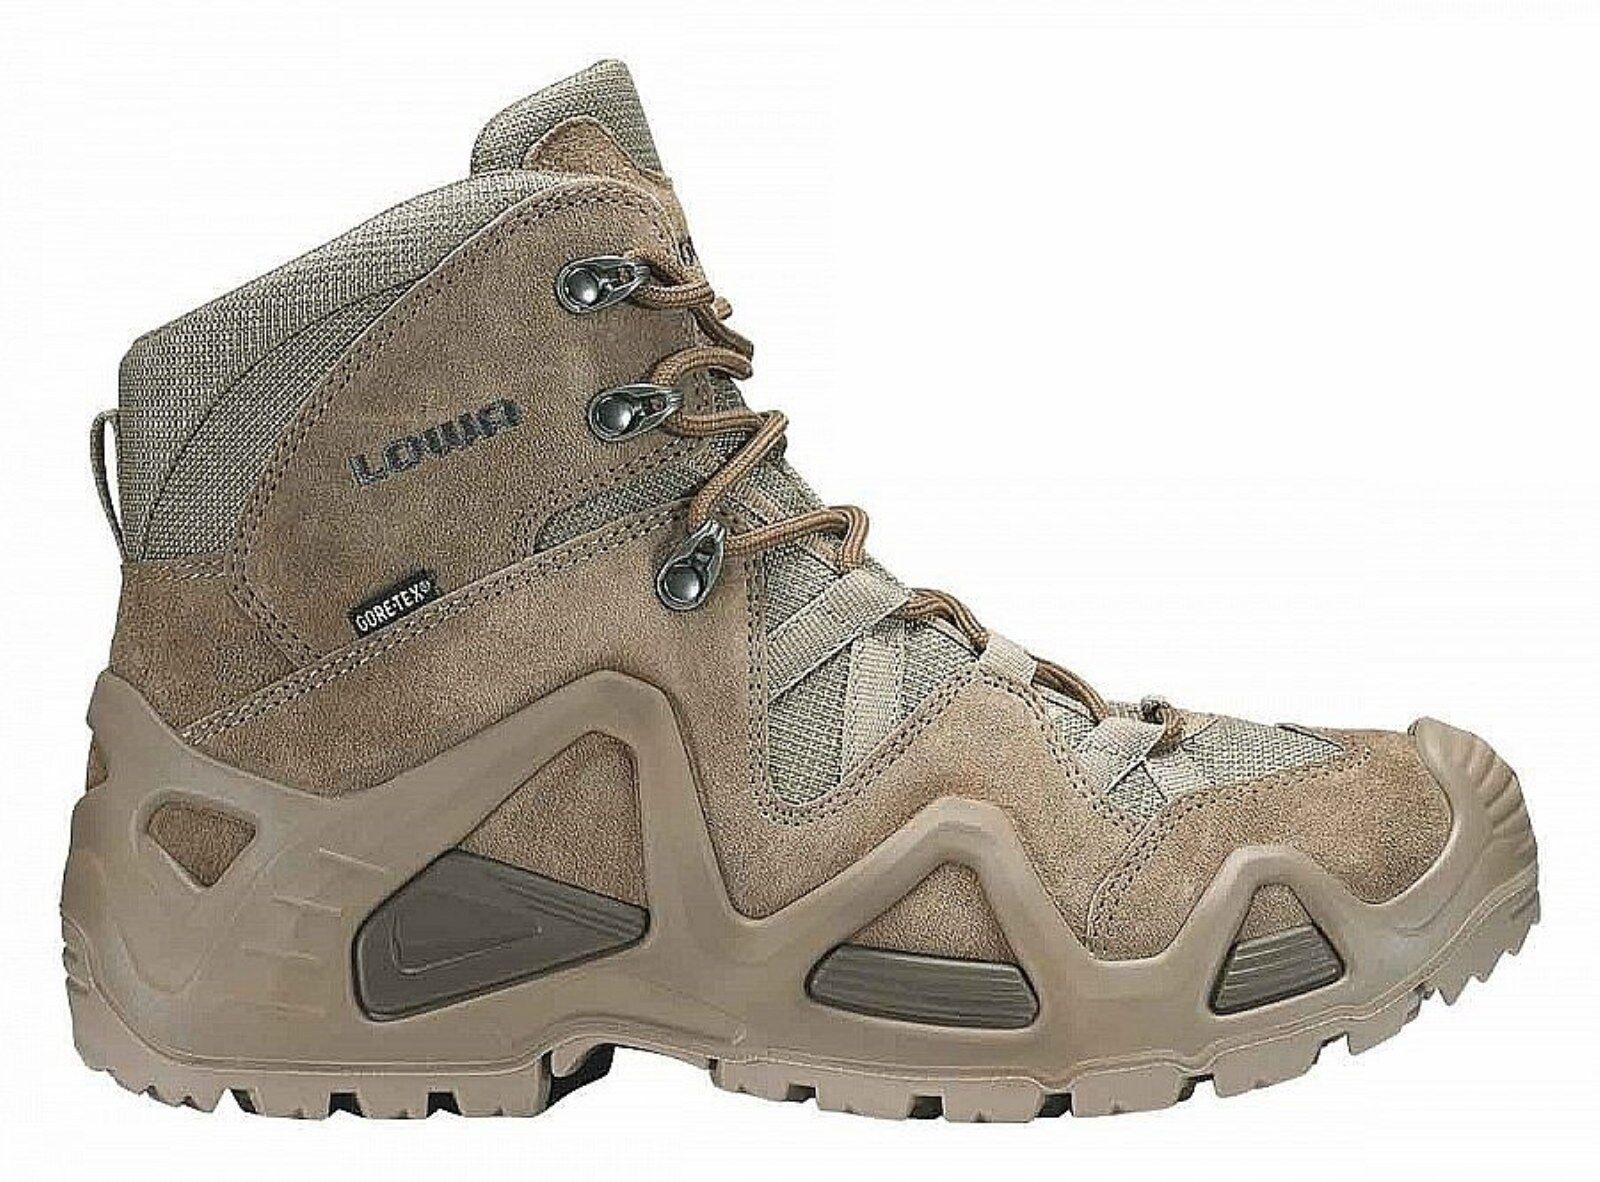 Gtx® Professional Outdoor Boots Tf Mid New Tactical Zephyr Military Lowa® Coyote xoWdBCer